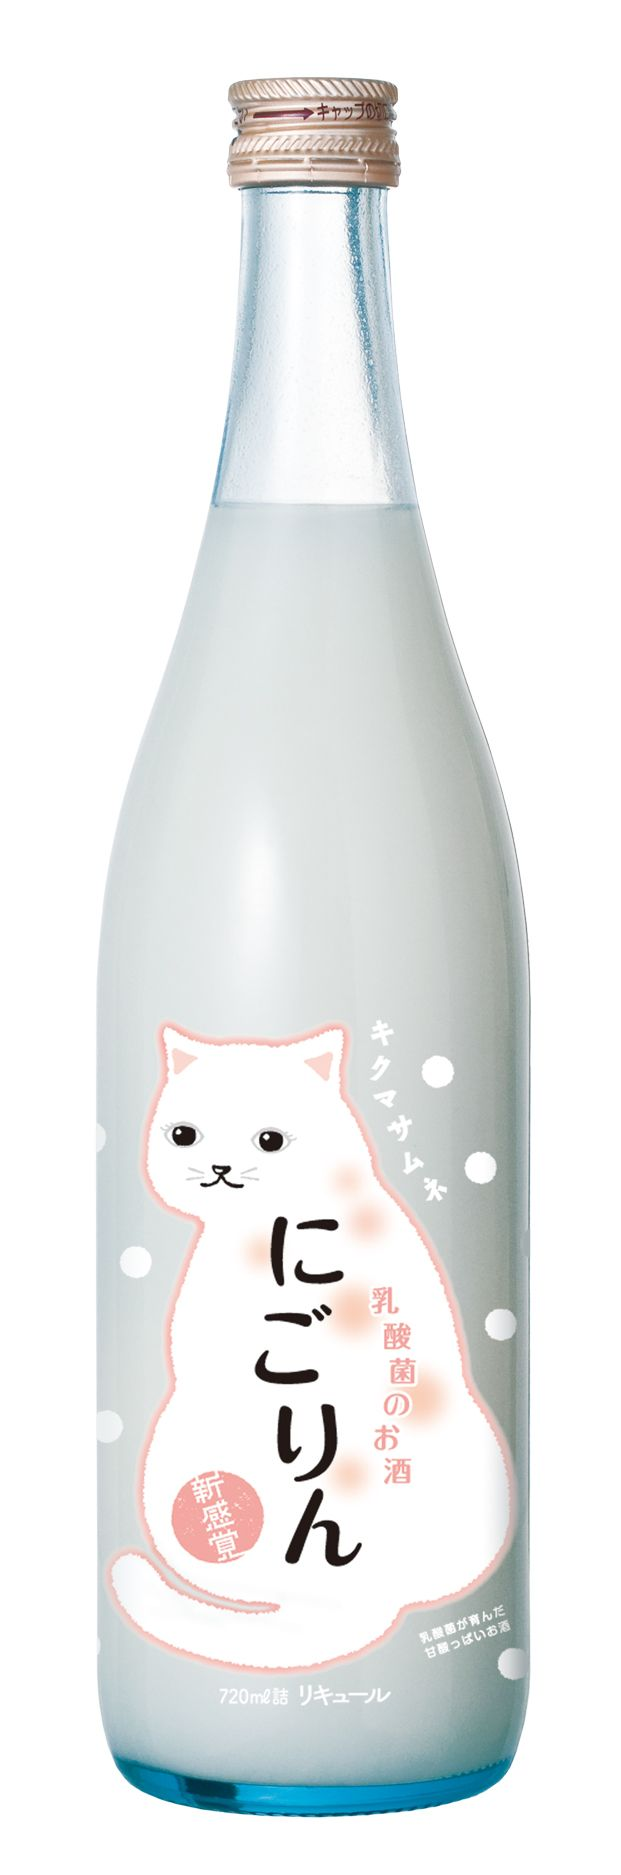 'Nigorin Sour' – Sake with Lactic Bacterium. Nigorin 乳酸菌のお酒 にごりんサワー.  They say a cat has nine lives and this packaging sure does too.   http://ilove.cat/en/4223